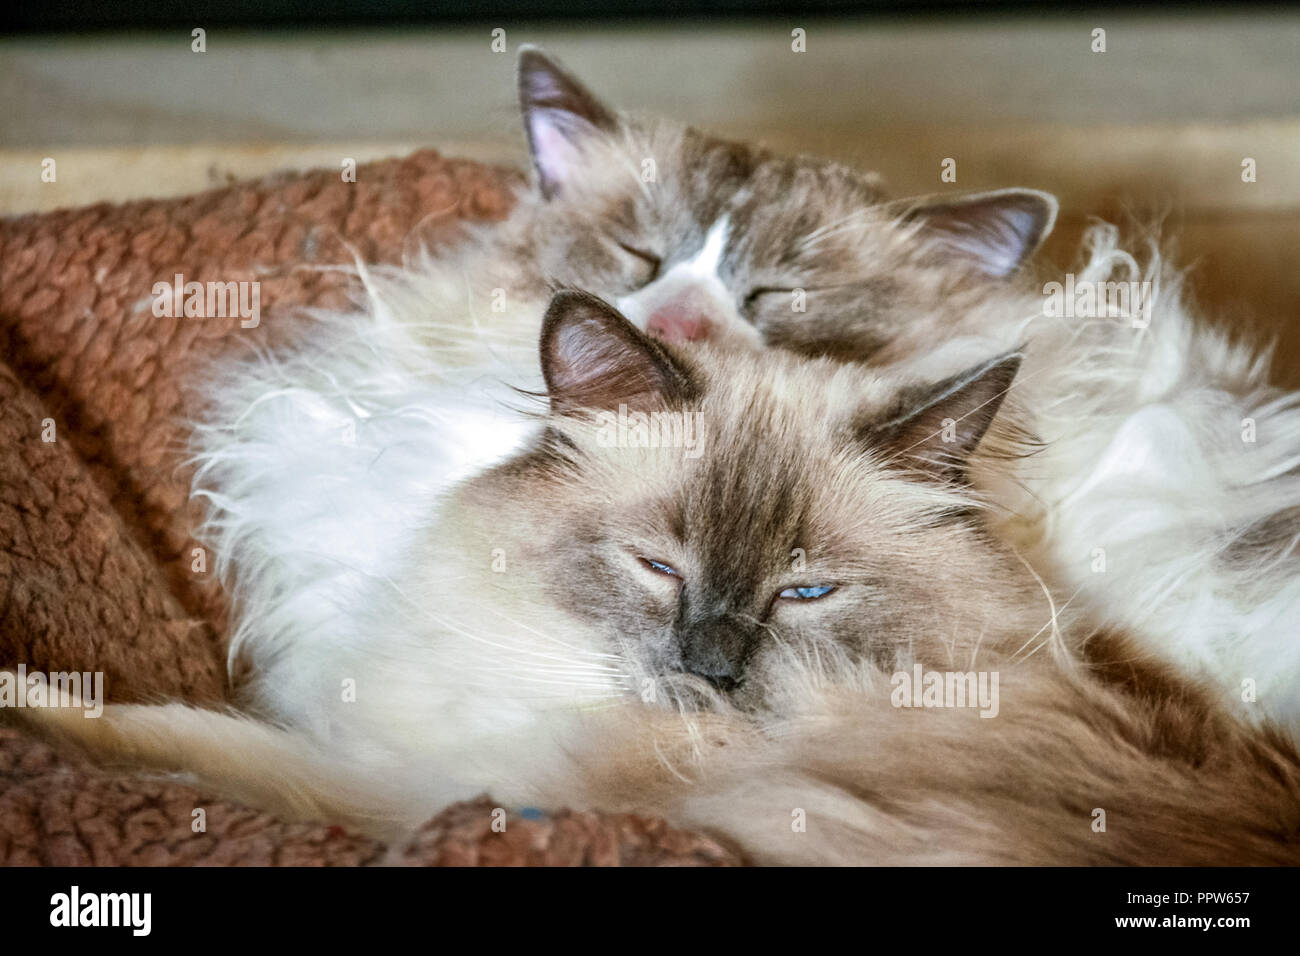 Two nice Ragdoll cats. It is best known for its docile and placid temperament and affectionate nature. - Stock Image